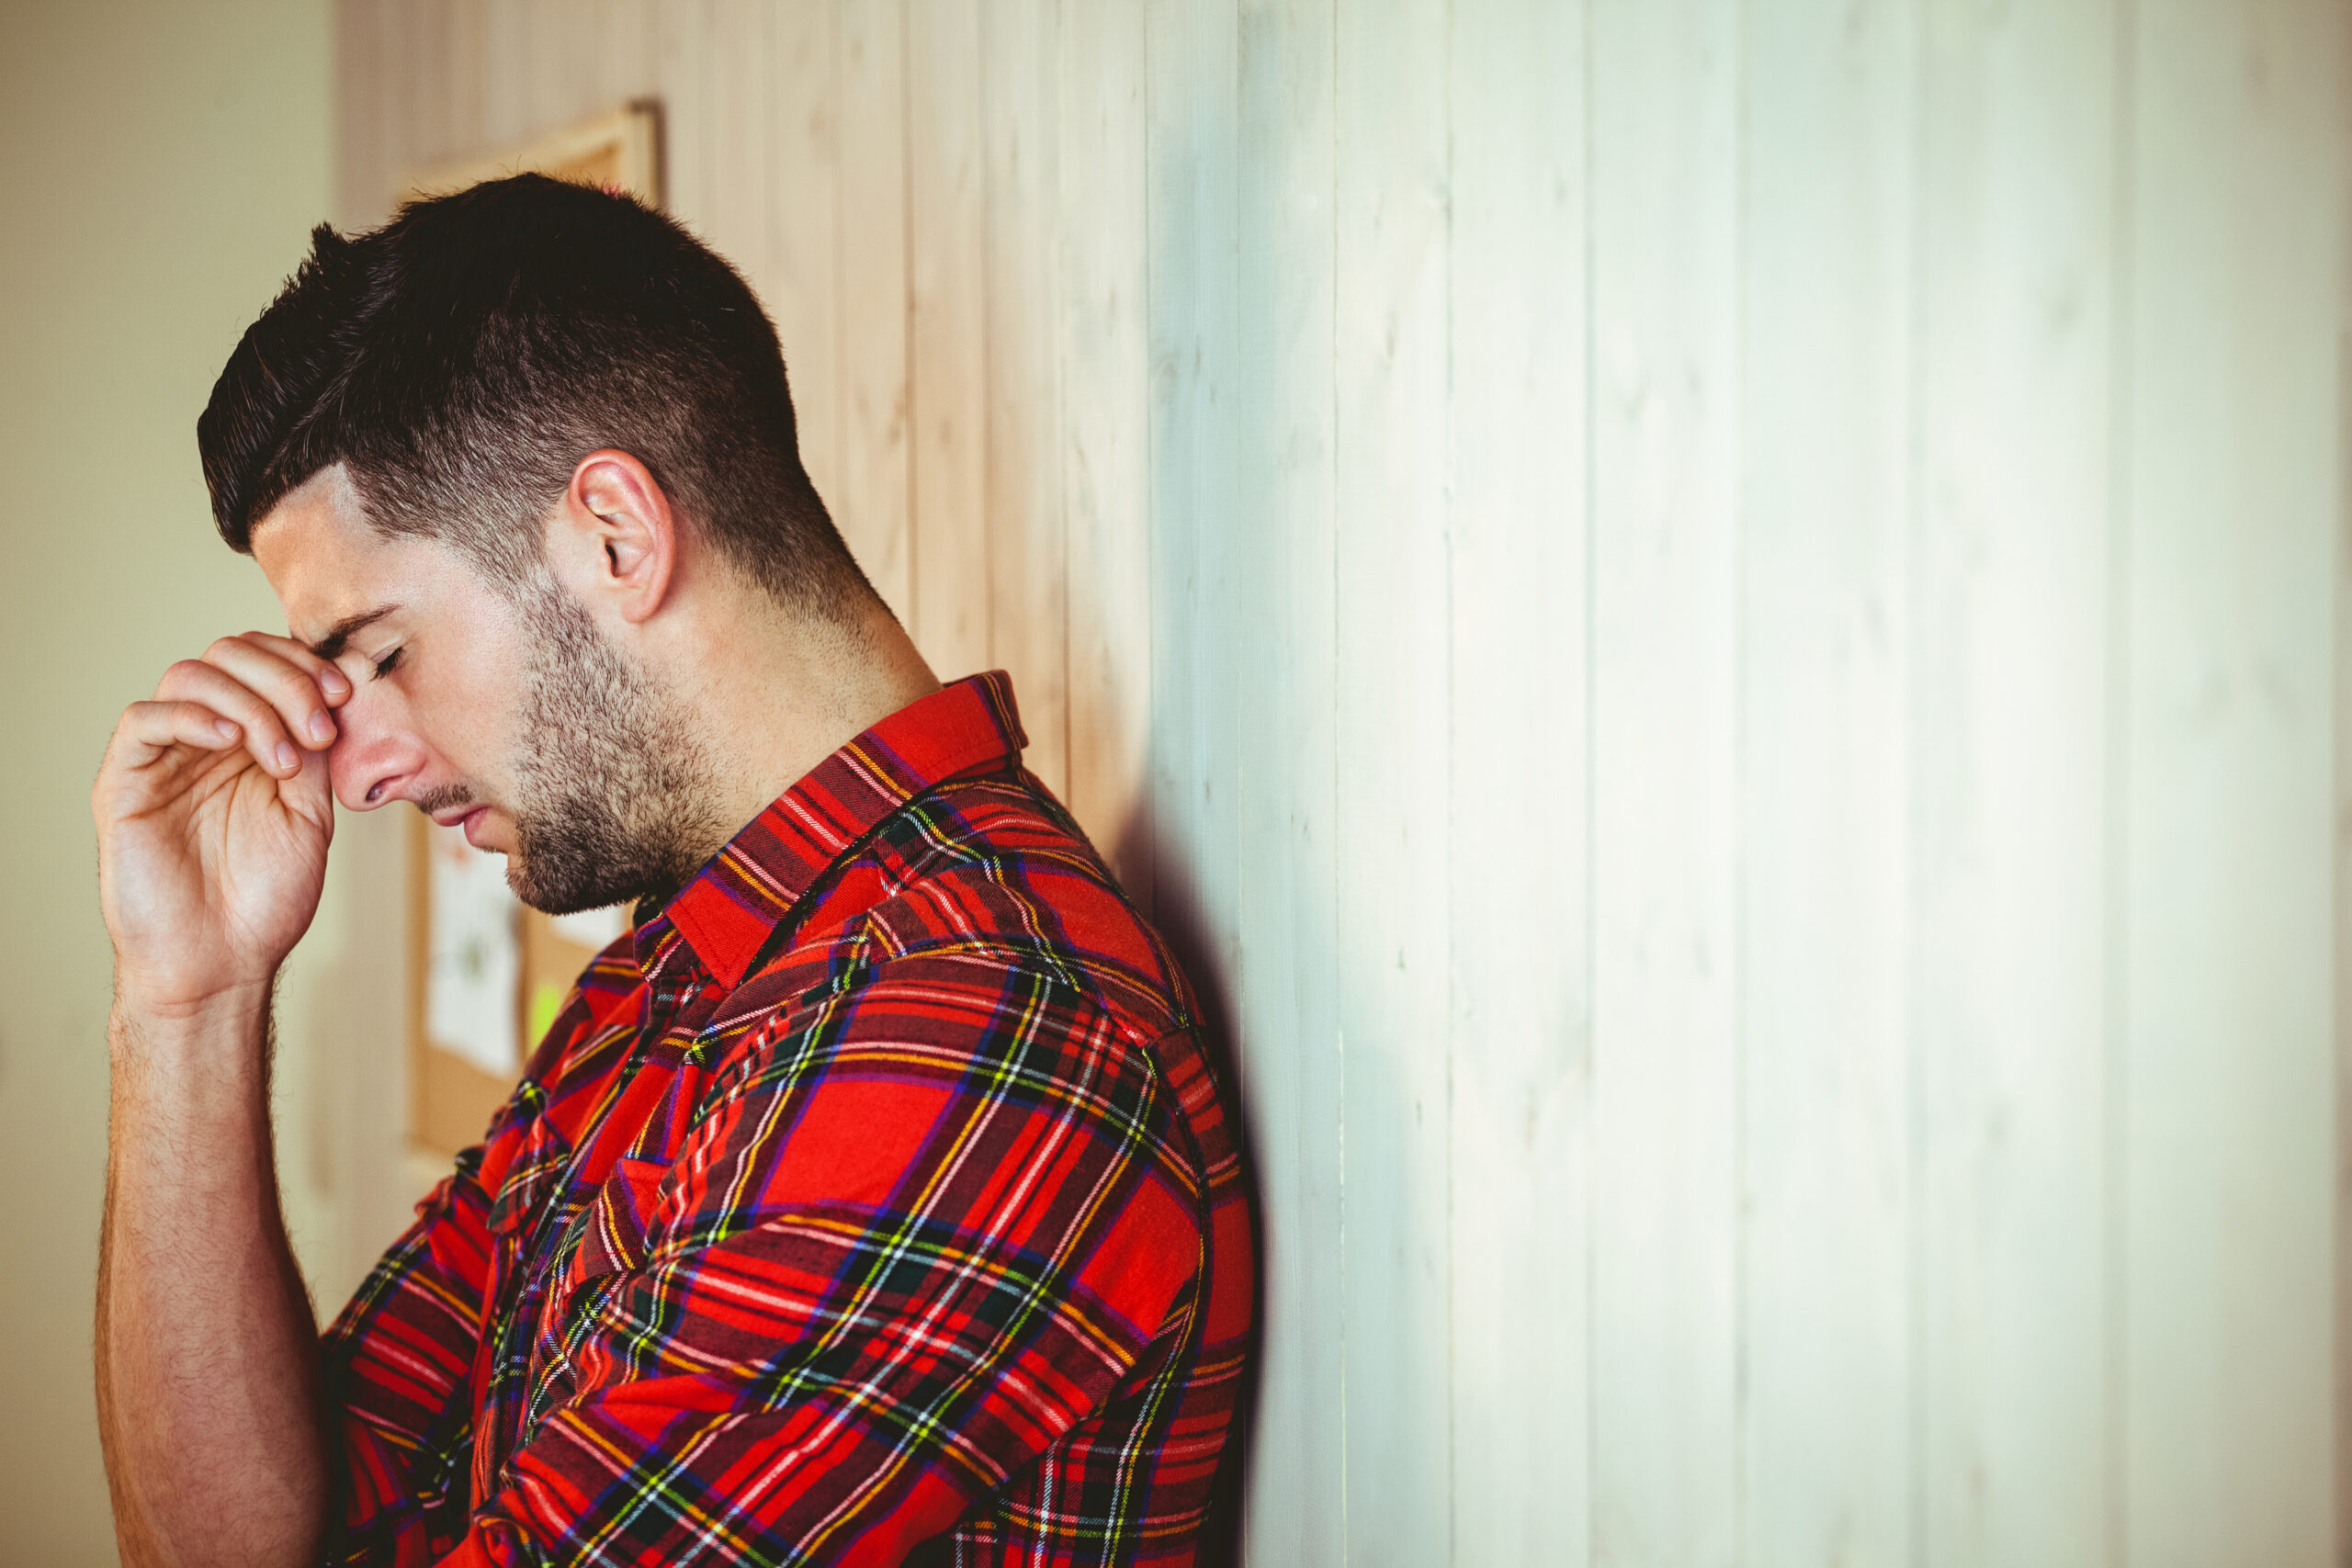 Male Domestic Abuse is More Common Than You Think